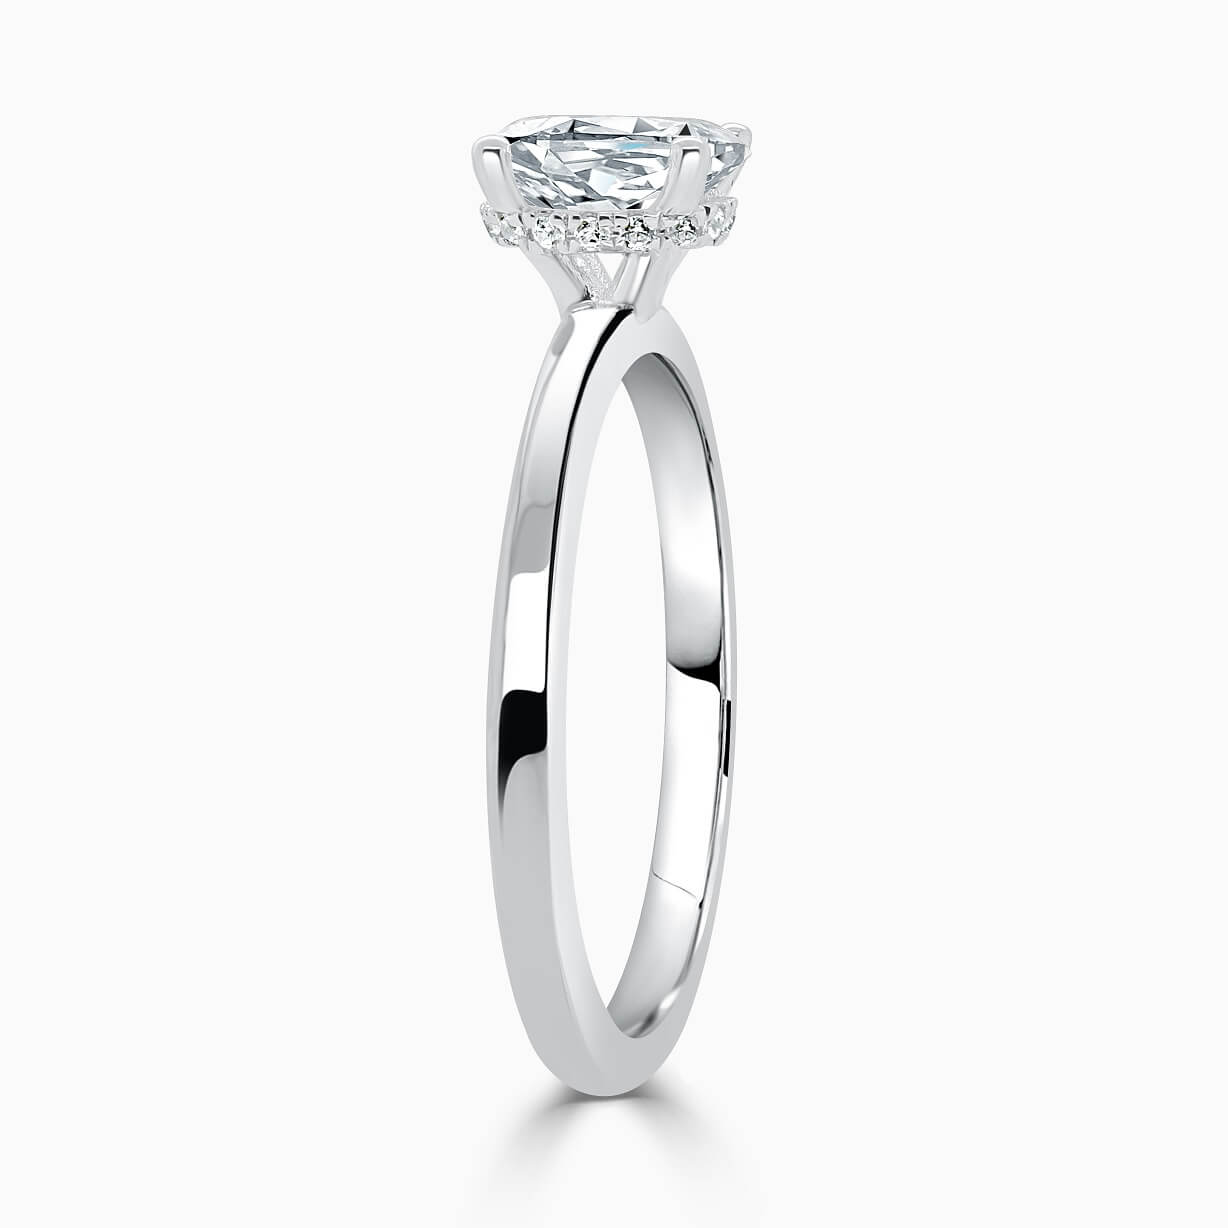 18ct White Gold Oval Shape Hidden Halo Engagement Ring